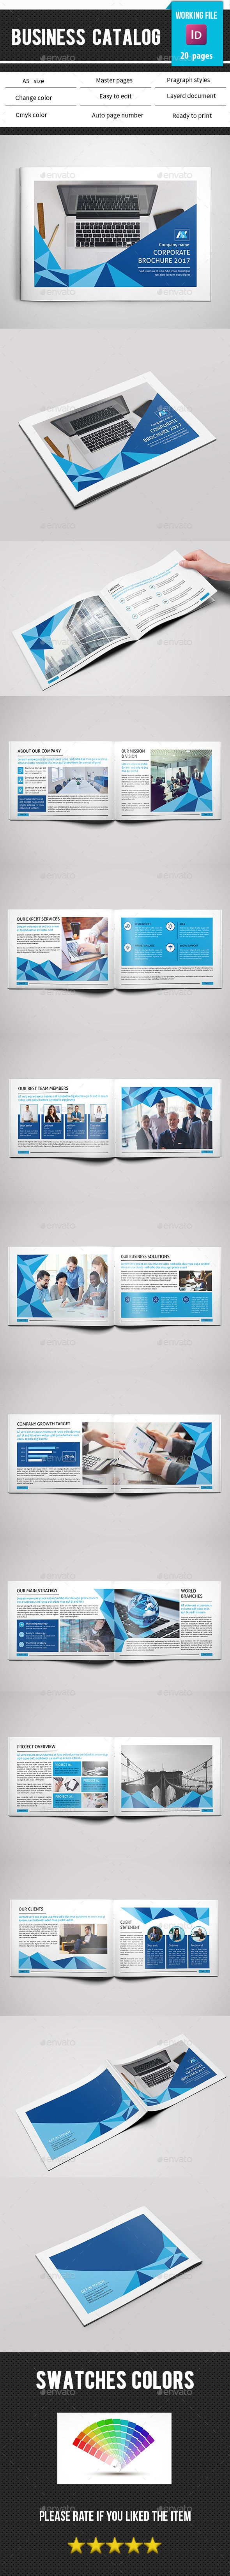 Business Catalog Template InDesign INDD - 20 Pages, A5